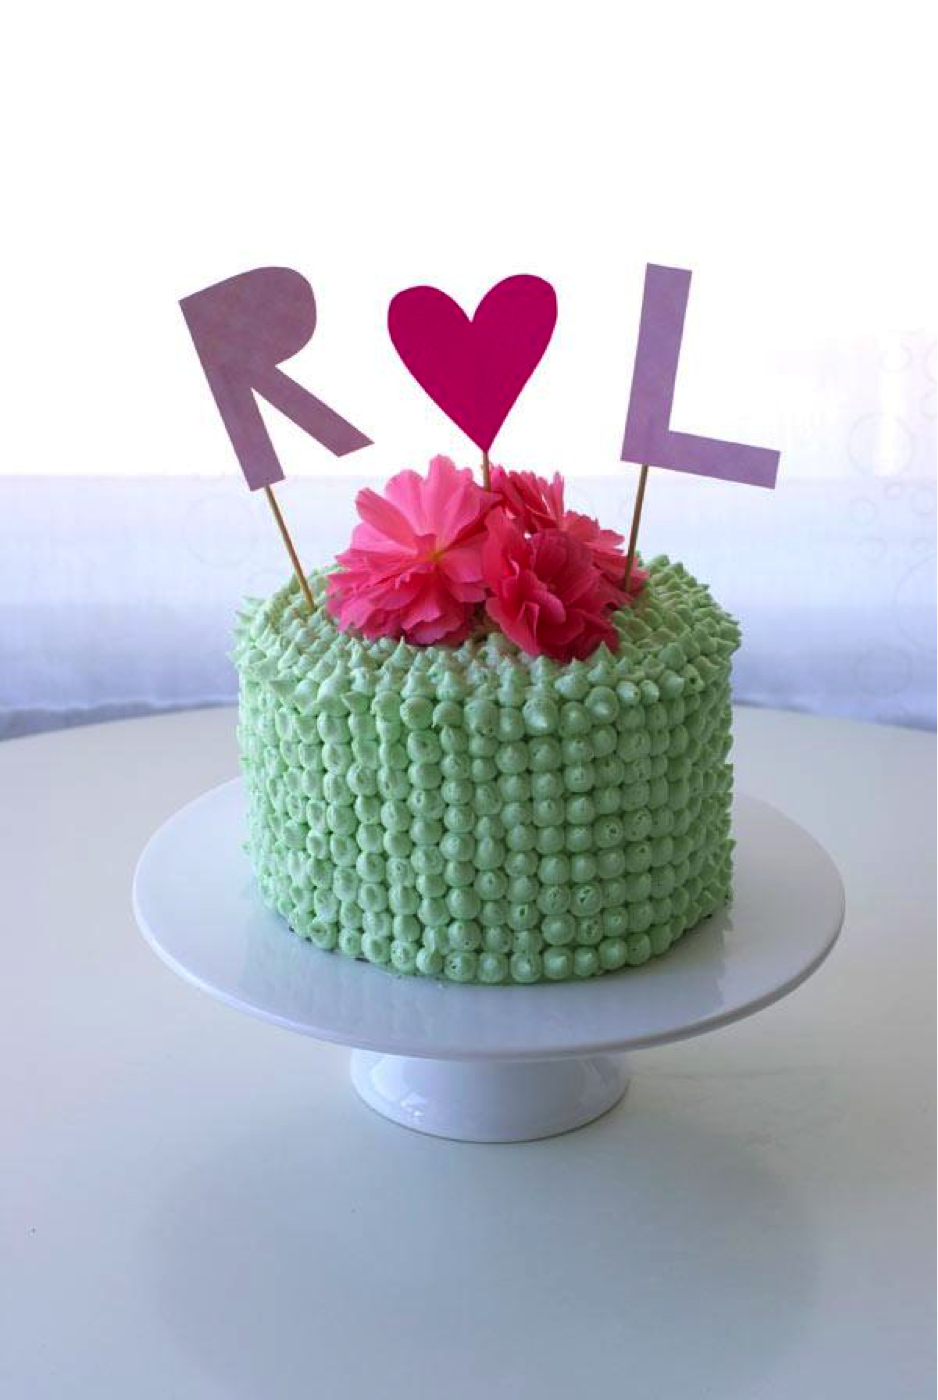 Mint Buttercream Cake Topped with Pink Flowers